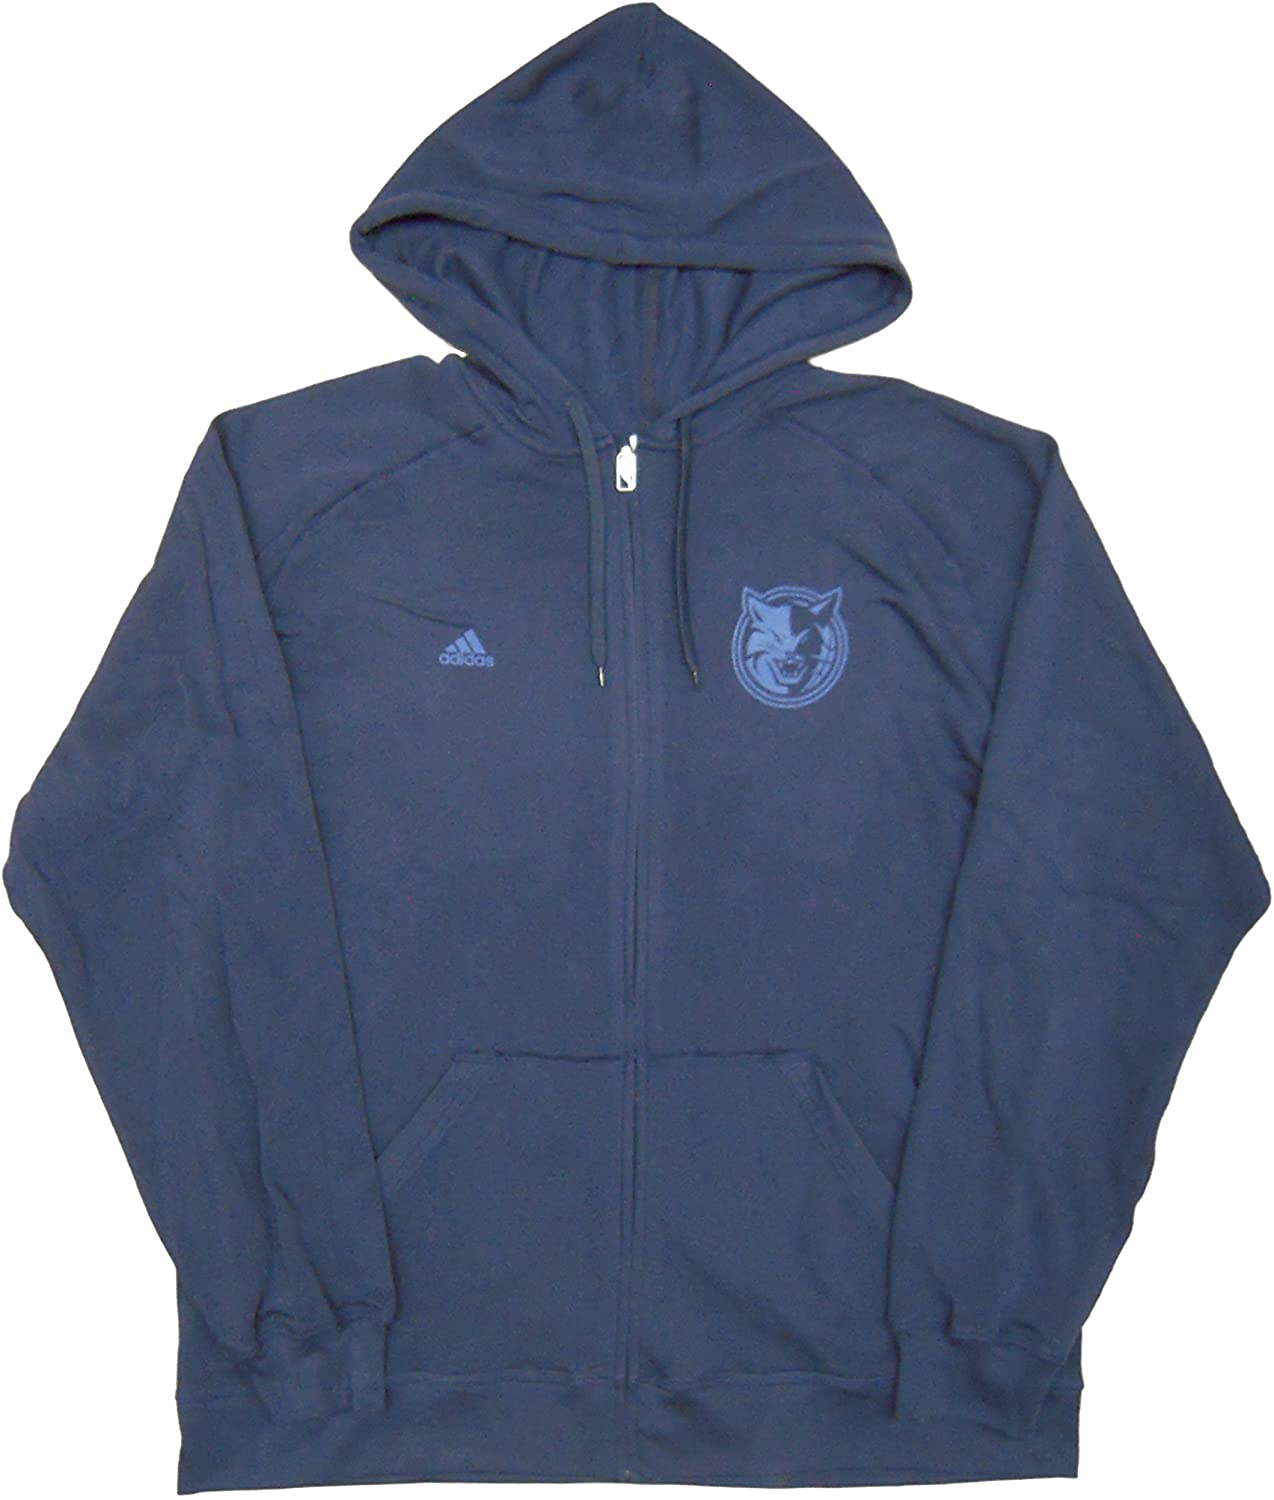 NBA Charlotte Bobcats Team Issued adidas Full-zip Hooded Sweatshirt Hoodie Navy - Size 4XL +2